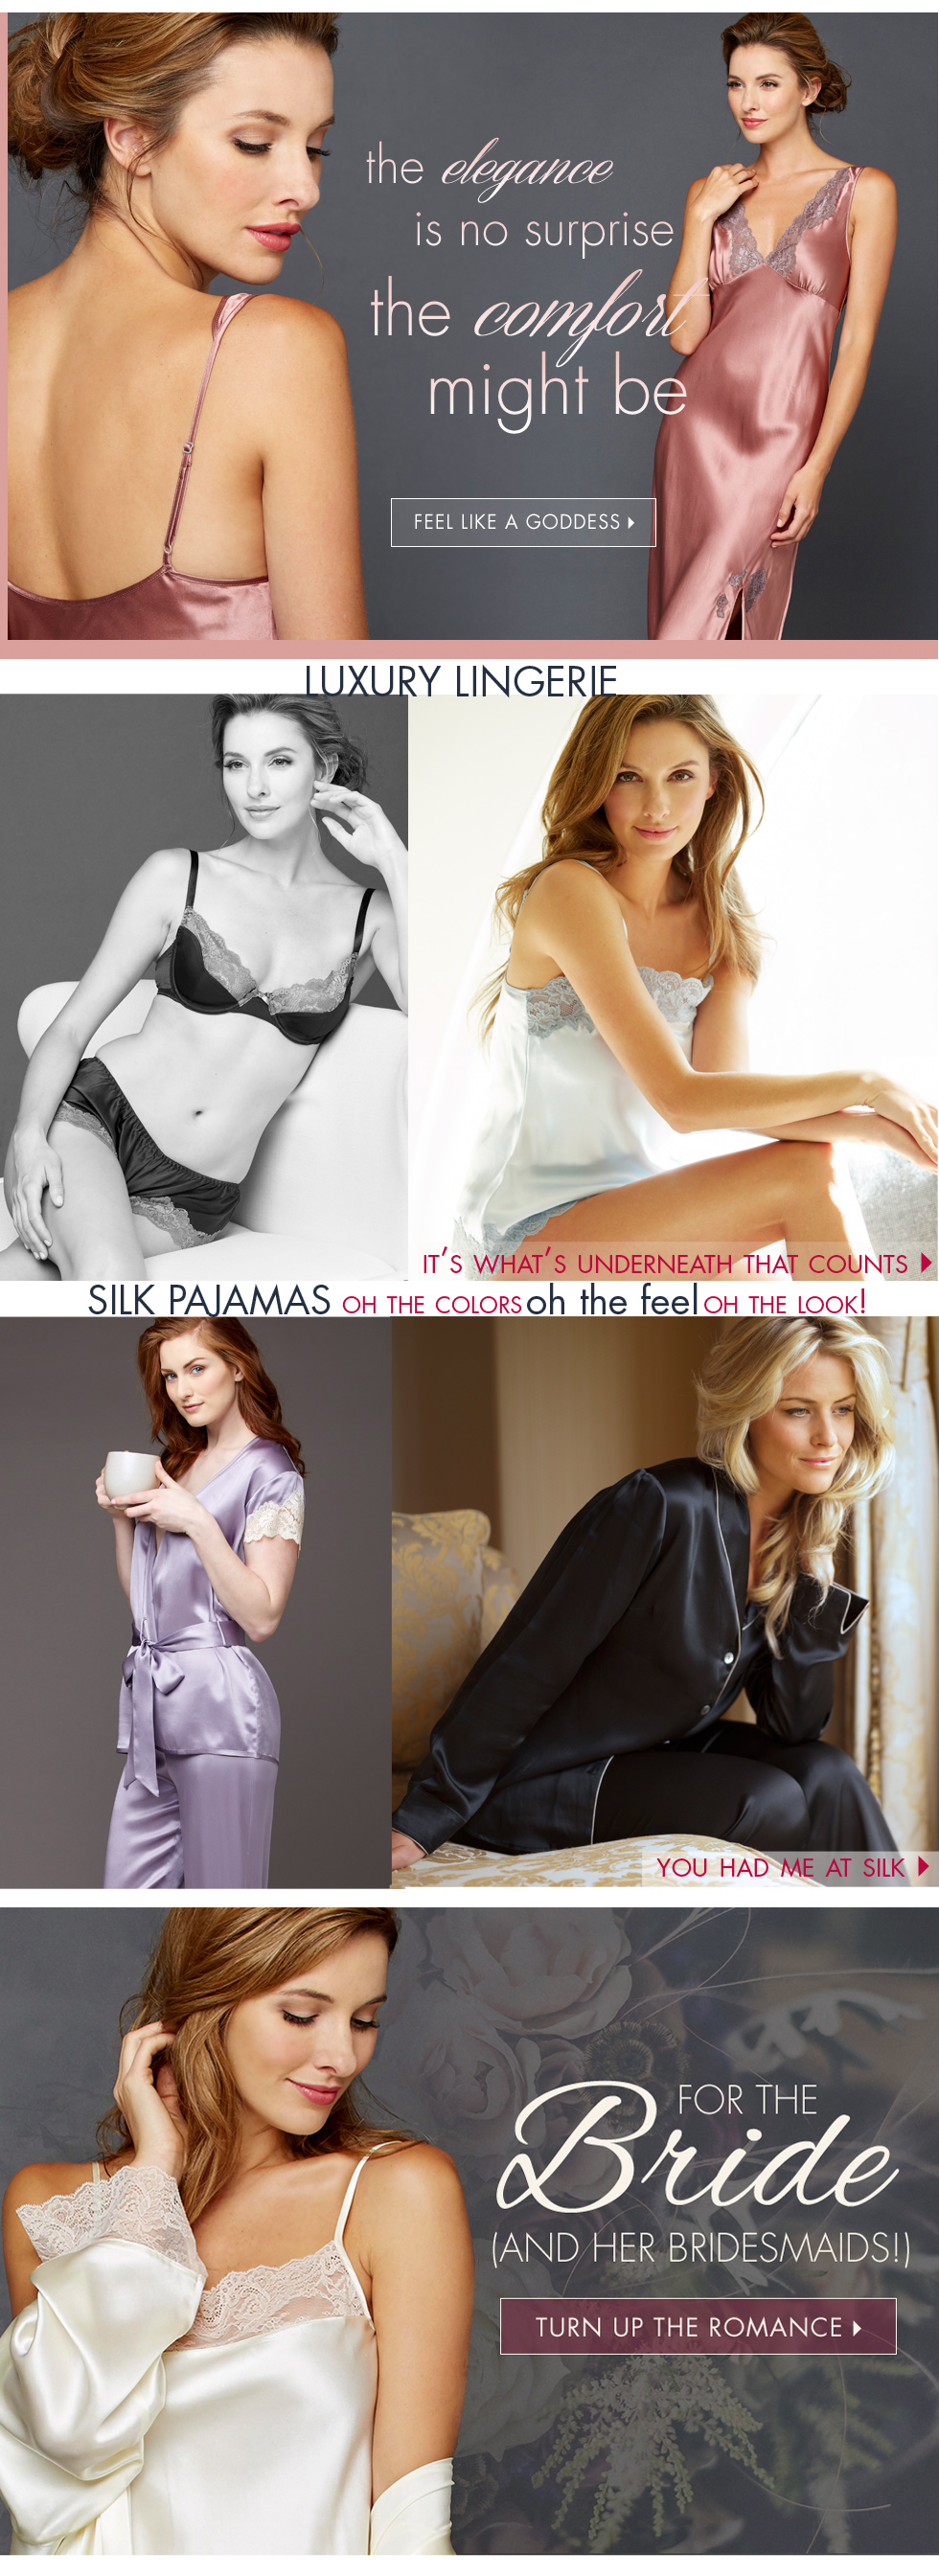 who says beautiful can't be comfortable? luxury lingerie and sleepwear